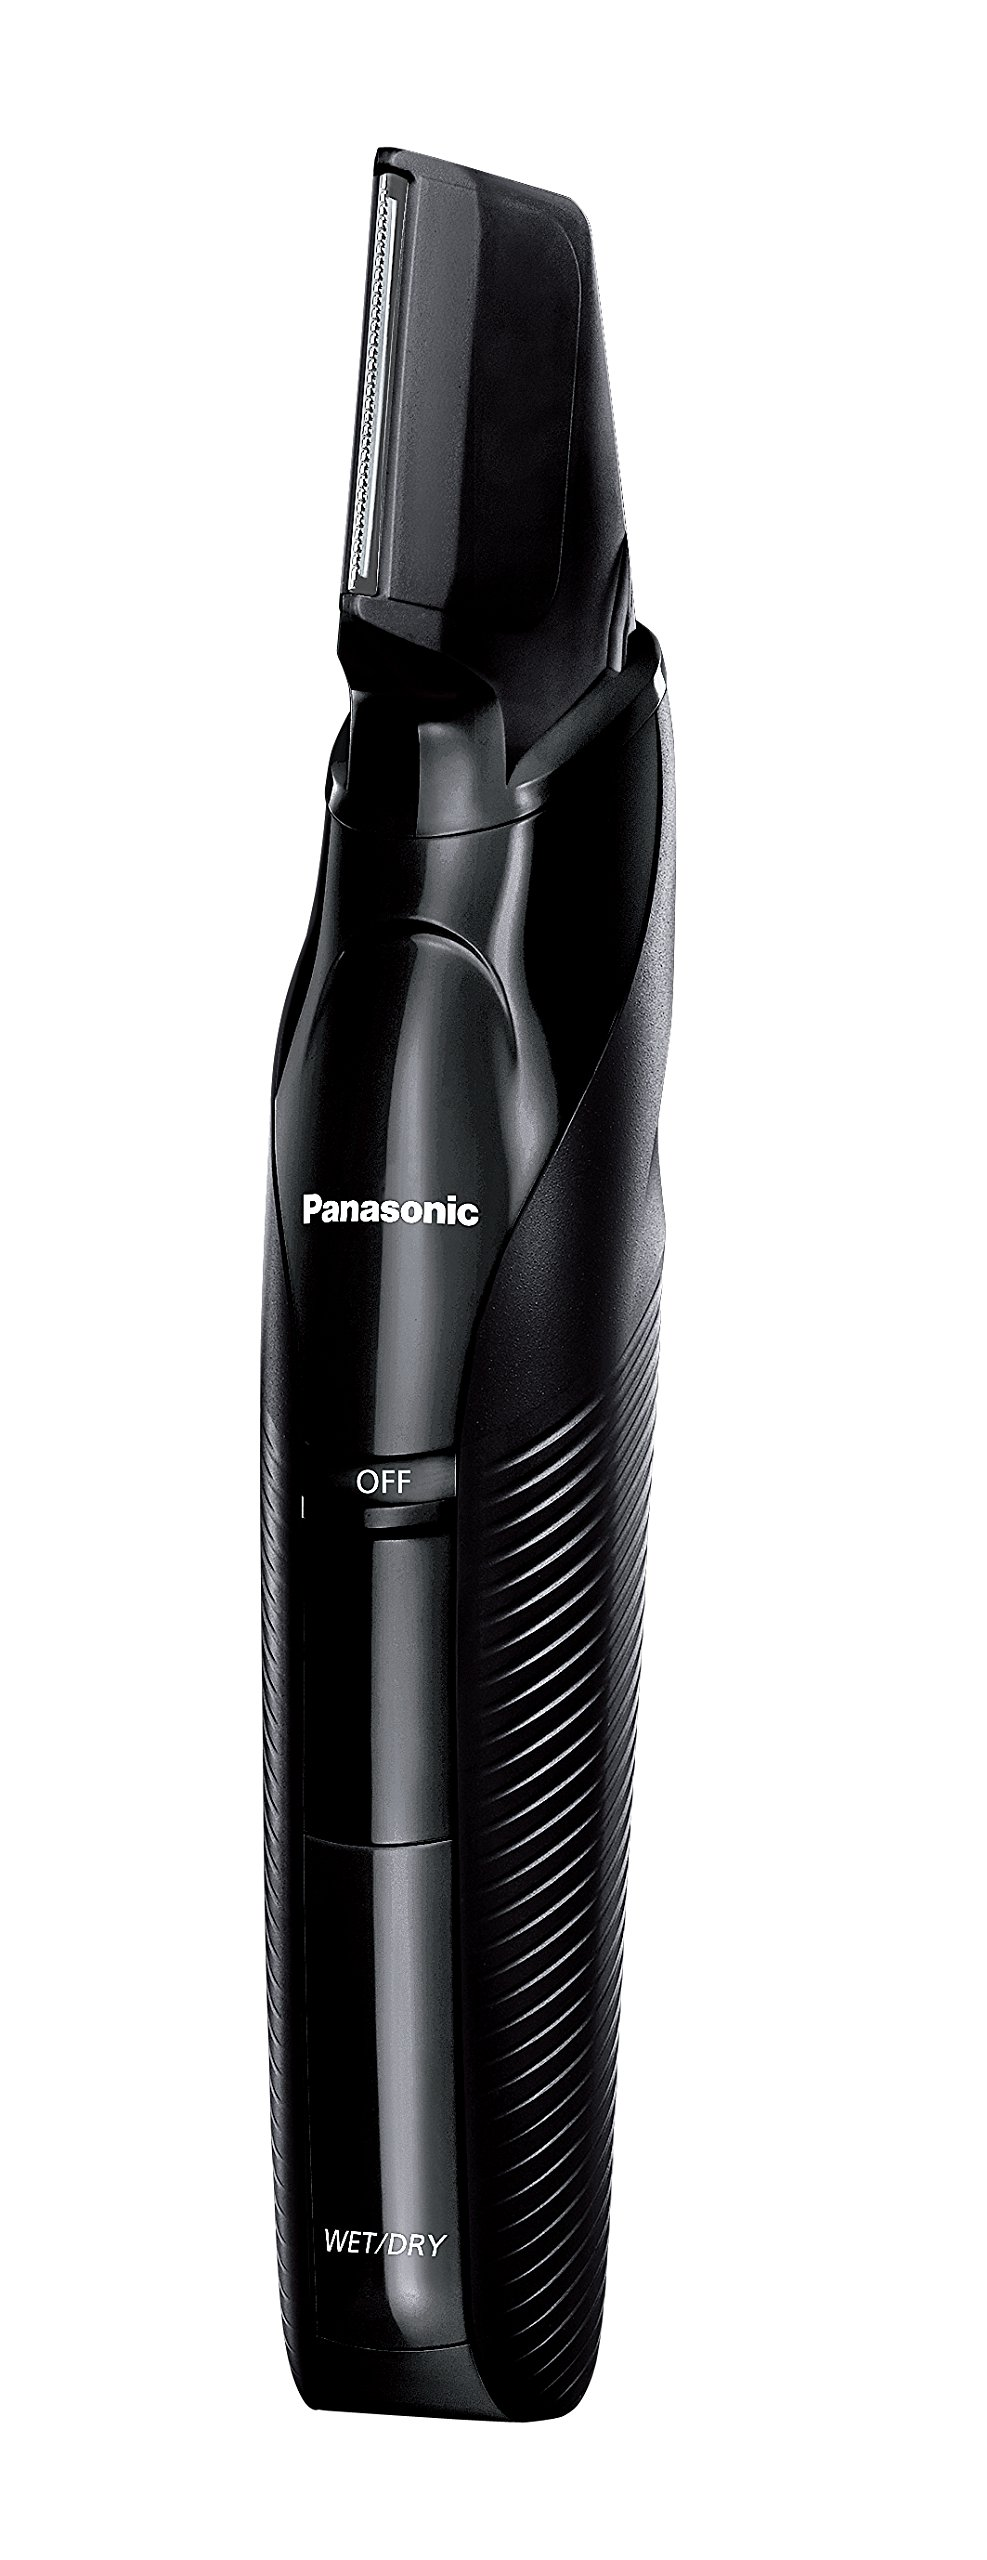 Panasonic Men's Grooming Body Trimmer ER-GK70-K (BLACK)【Japan Domestic Genuine Products】 【Ships from Japan】 by Panasonic